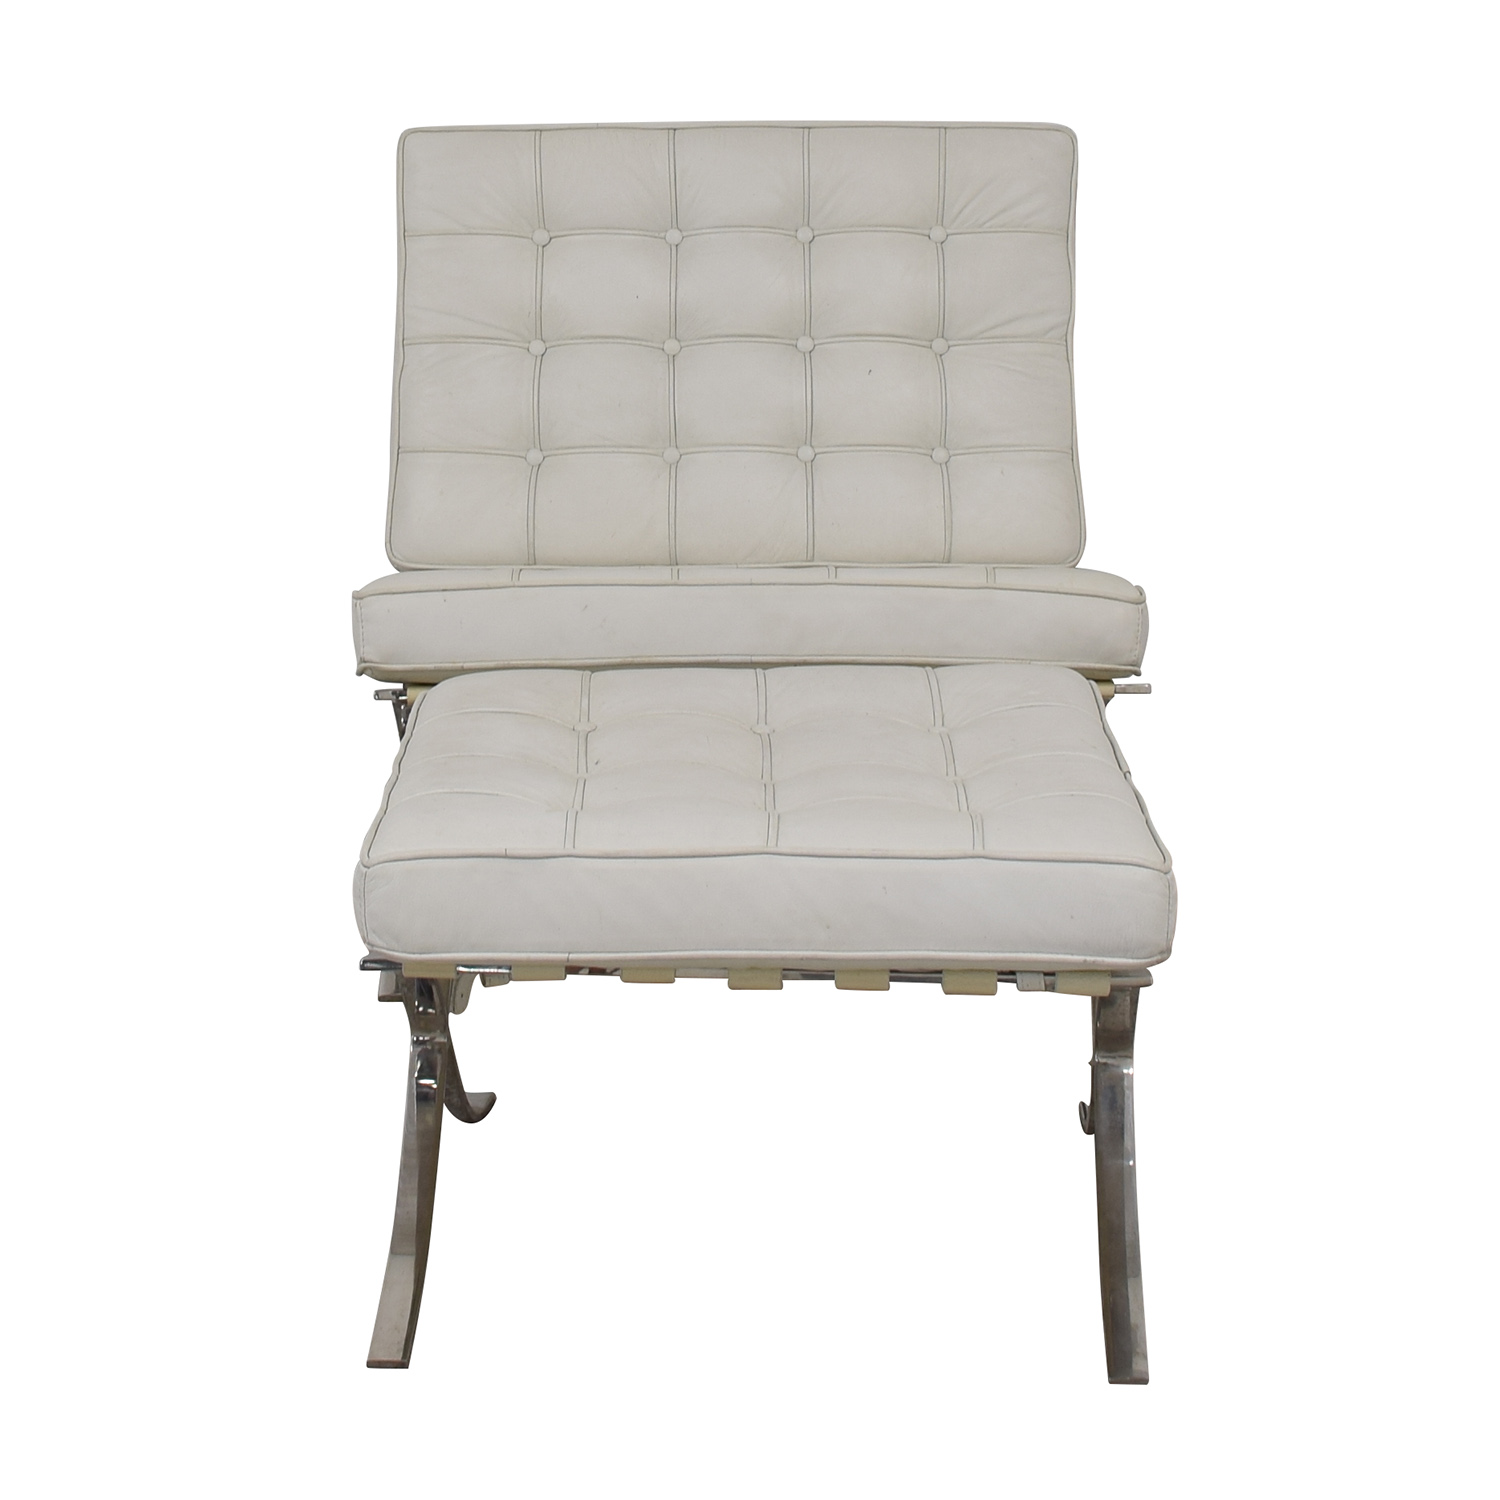 Barcelona Style White Tufted Chair and Ottoman discount